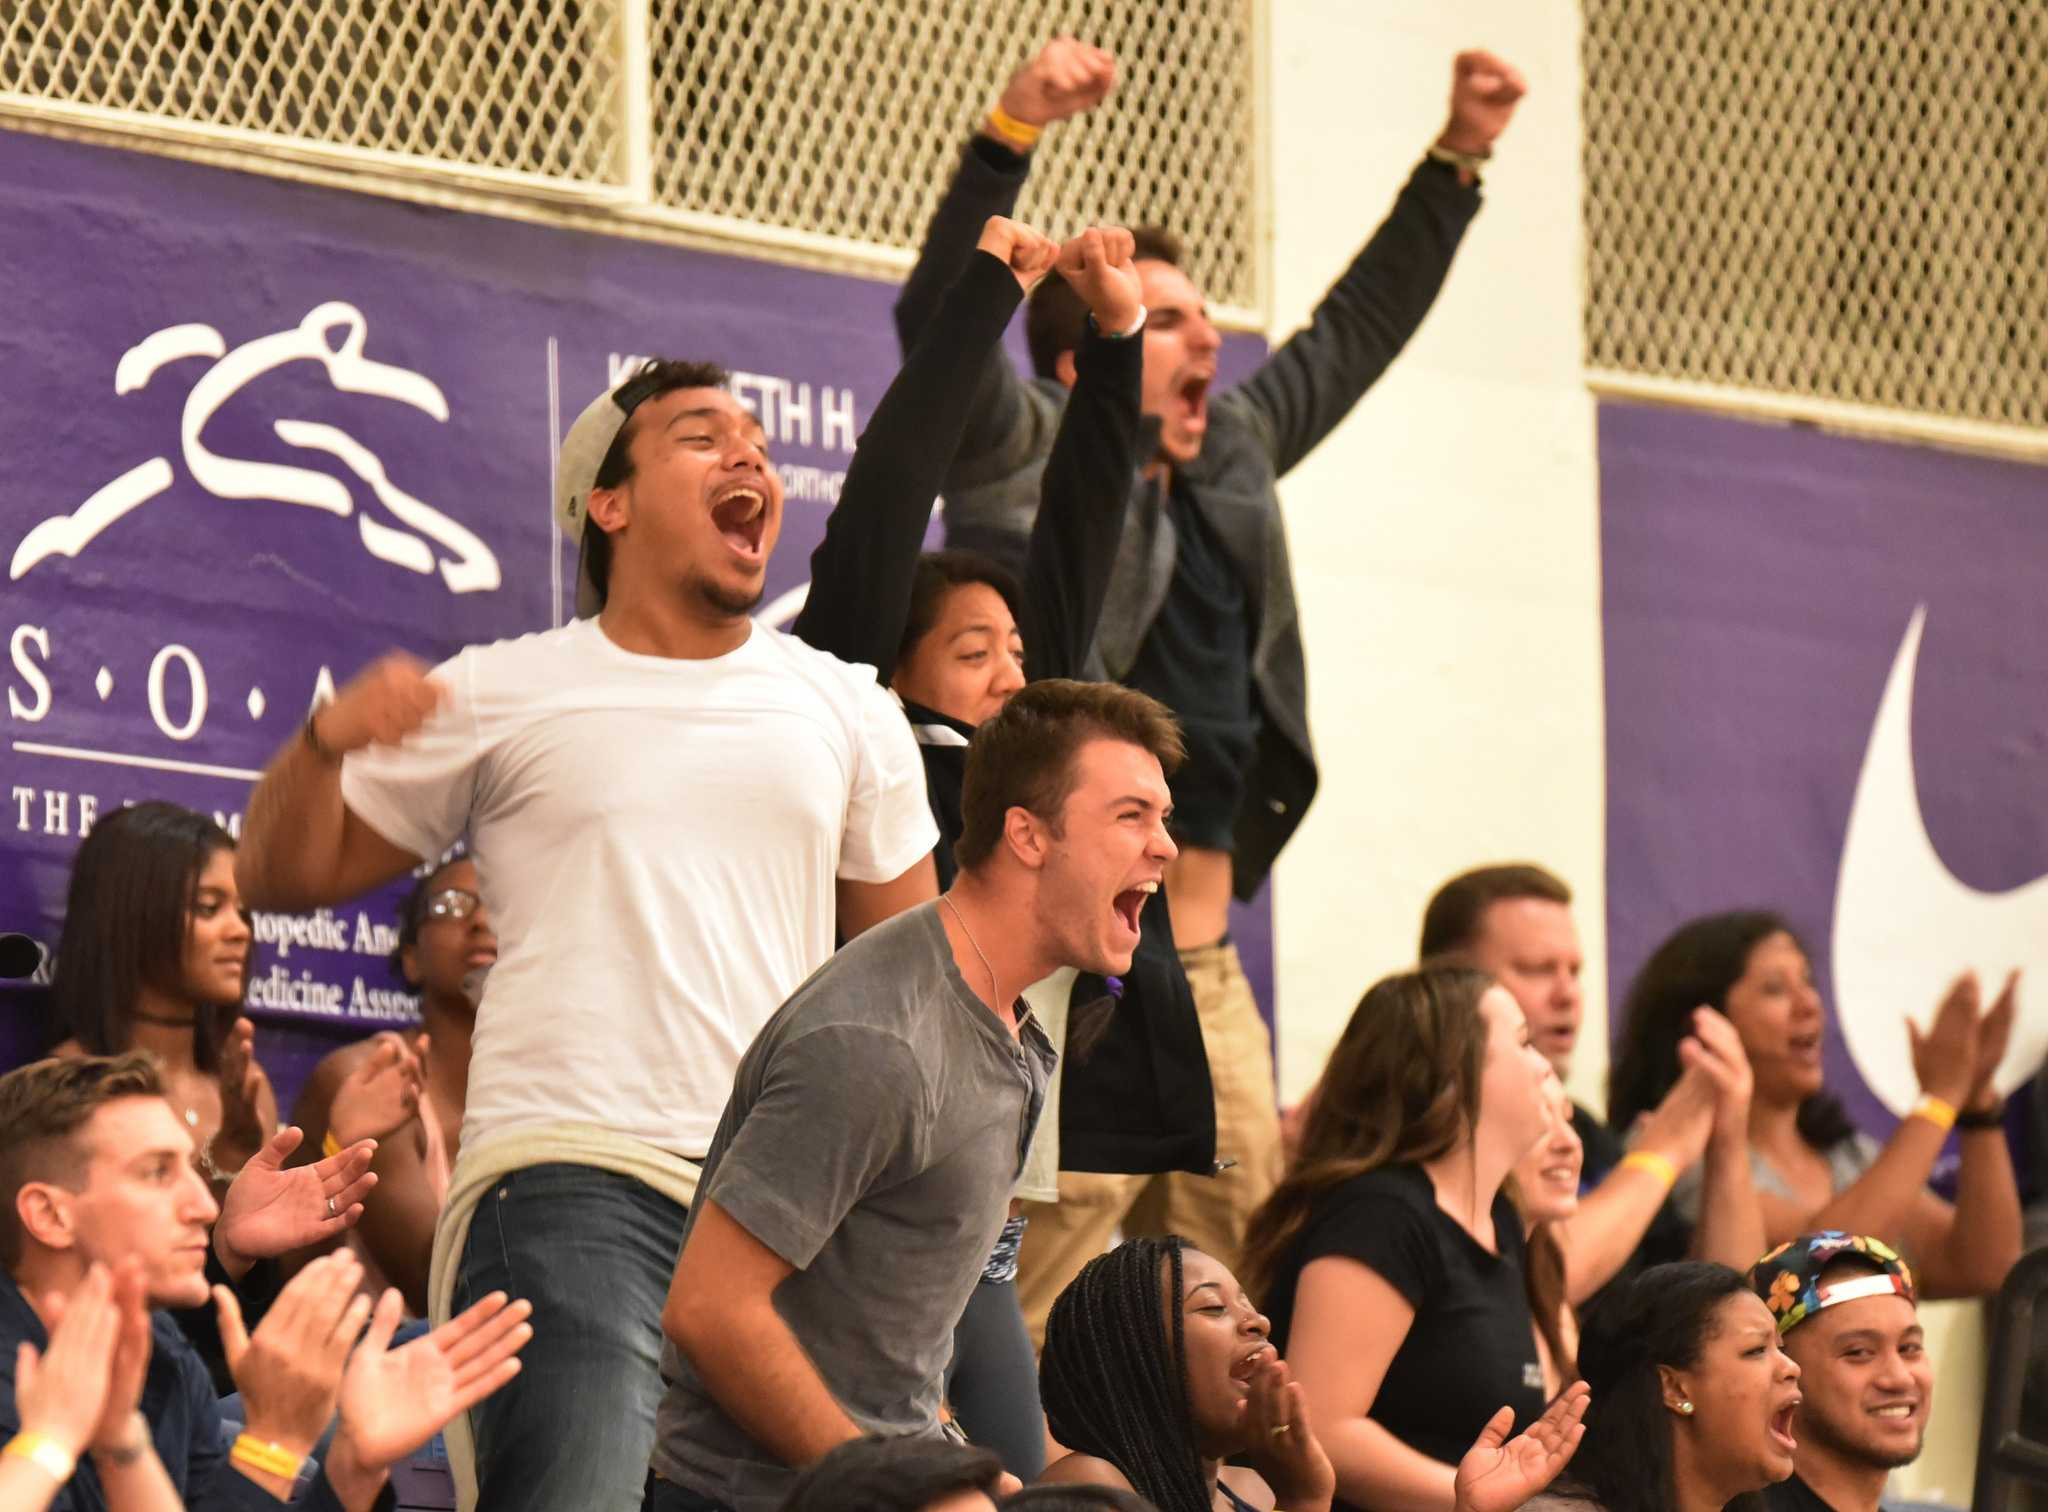 David Tui, left, and other fans cheer for SF State Gators during the game won 3-1 against Cal State East Bay Pioneers at the Swamp at SF State Saturday, Sep. 19. (Qing Huang / Xpress